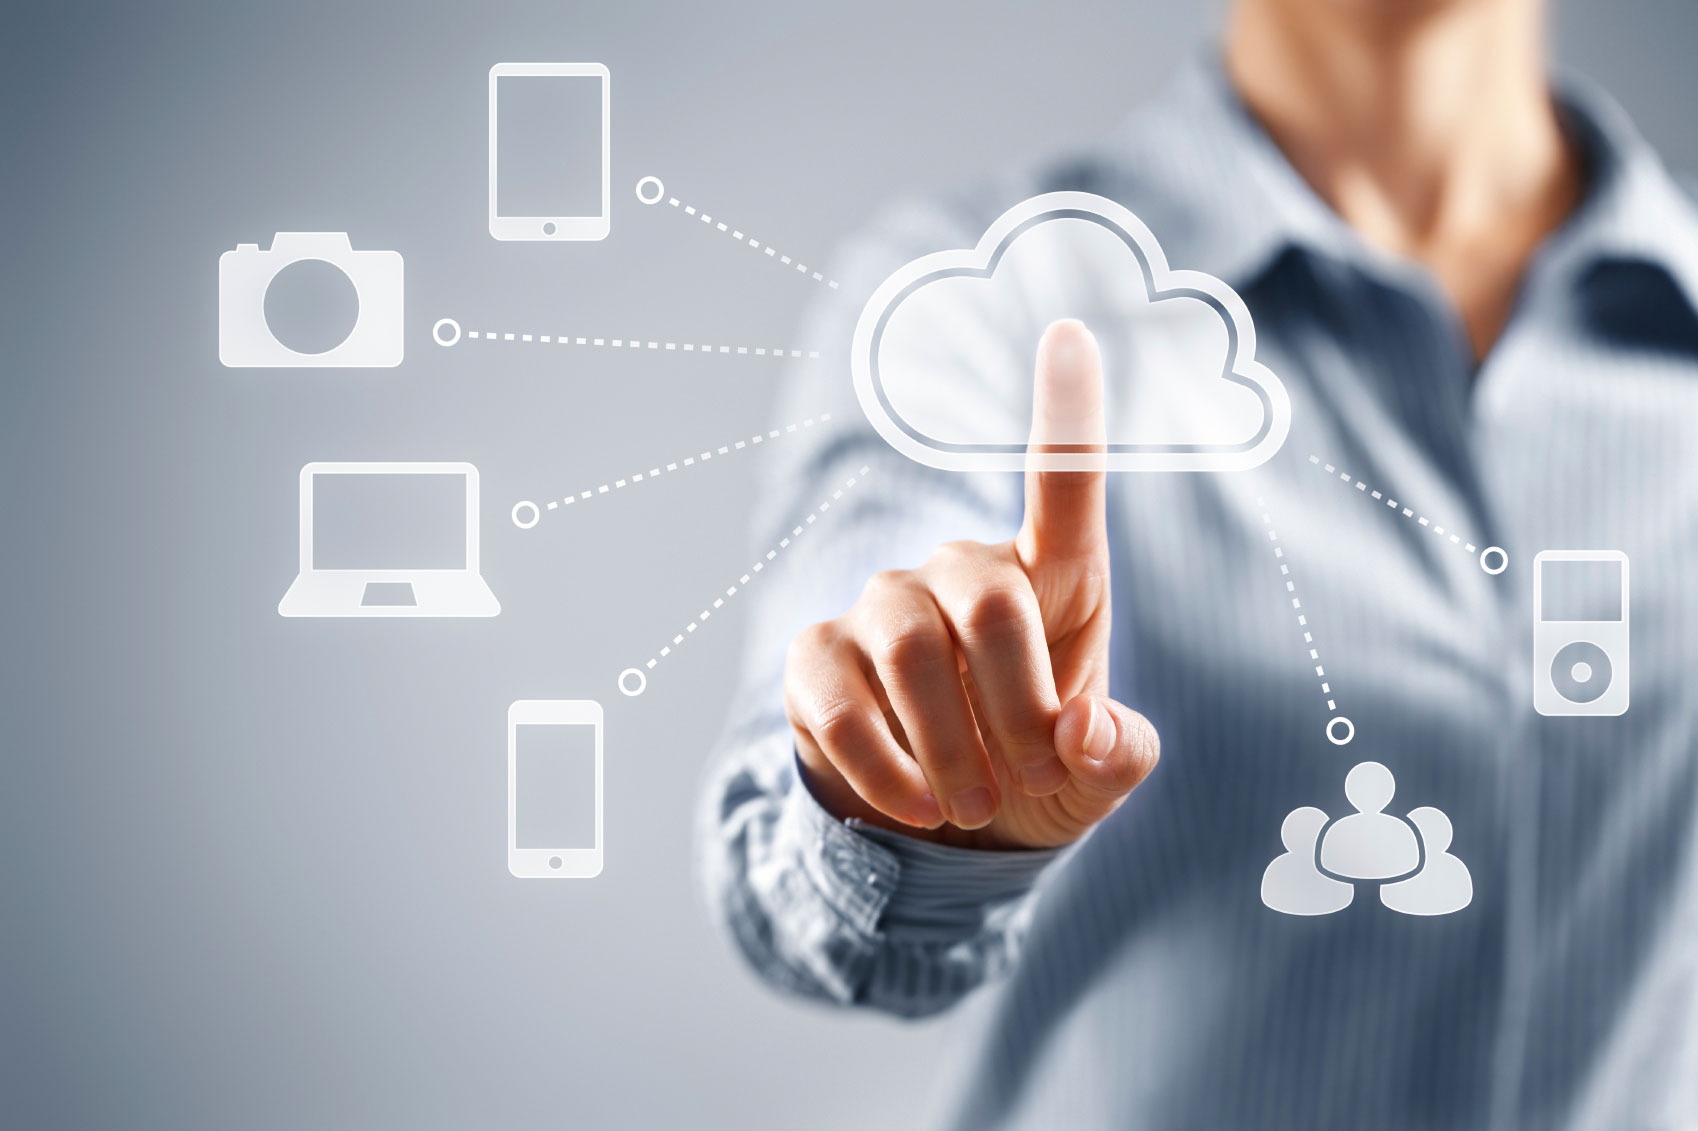 Cloud Computing | The Age of the Customer – by Jim Blasingame